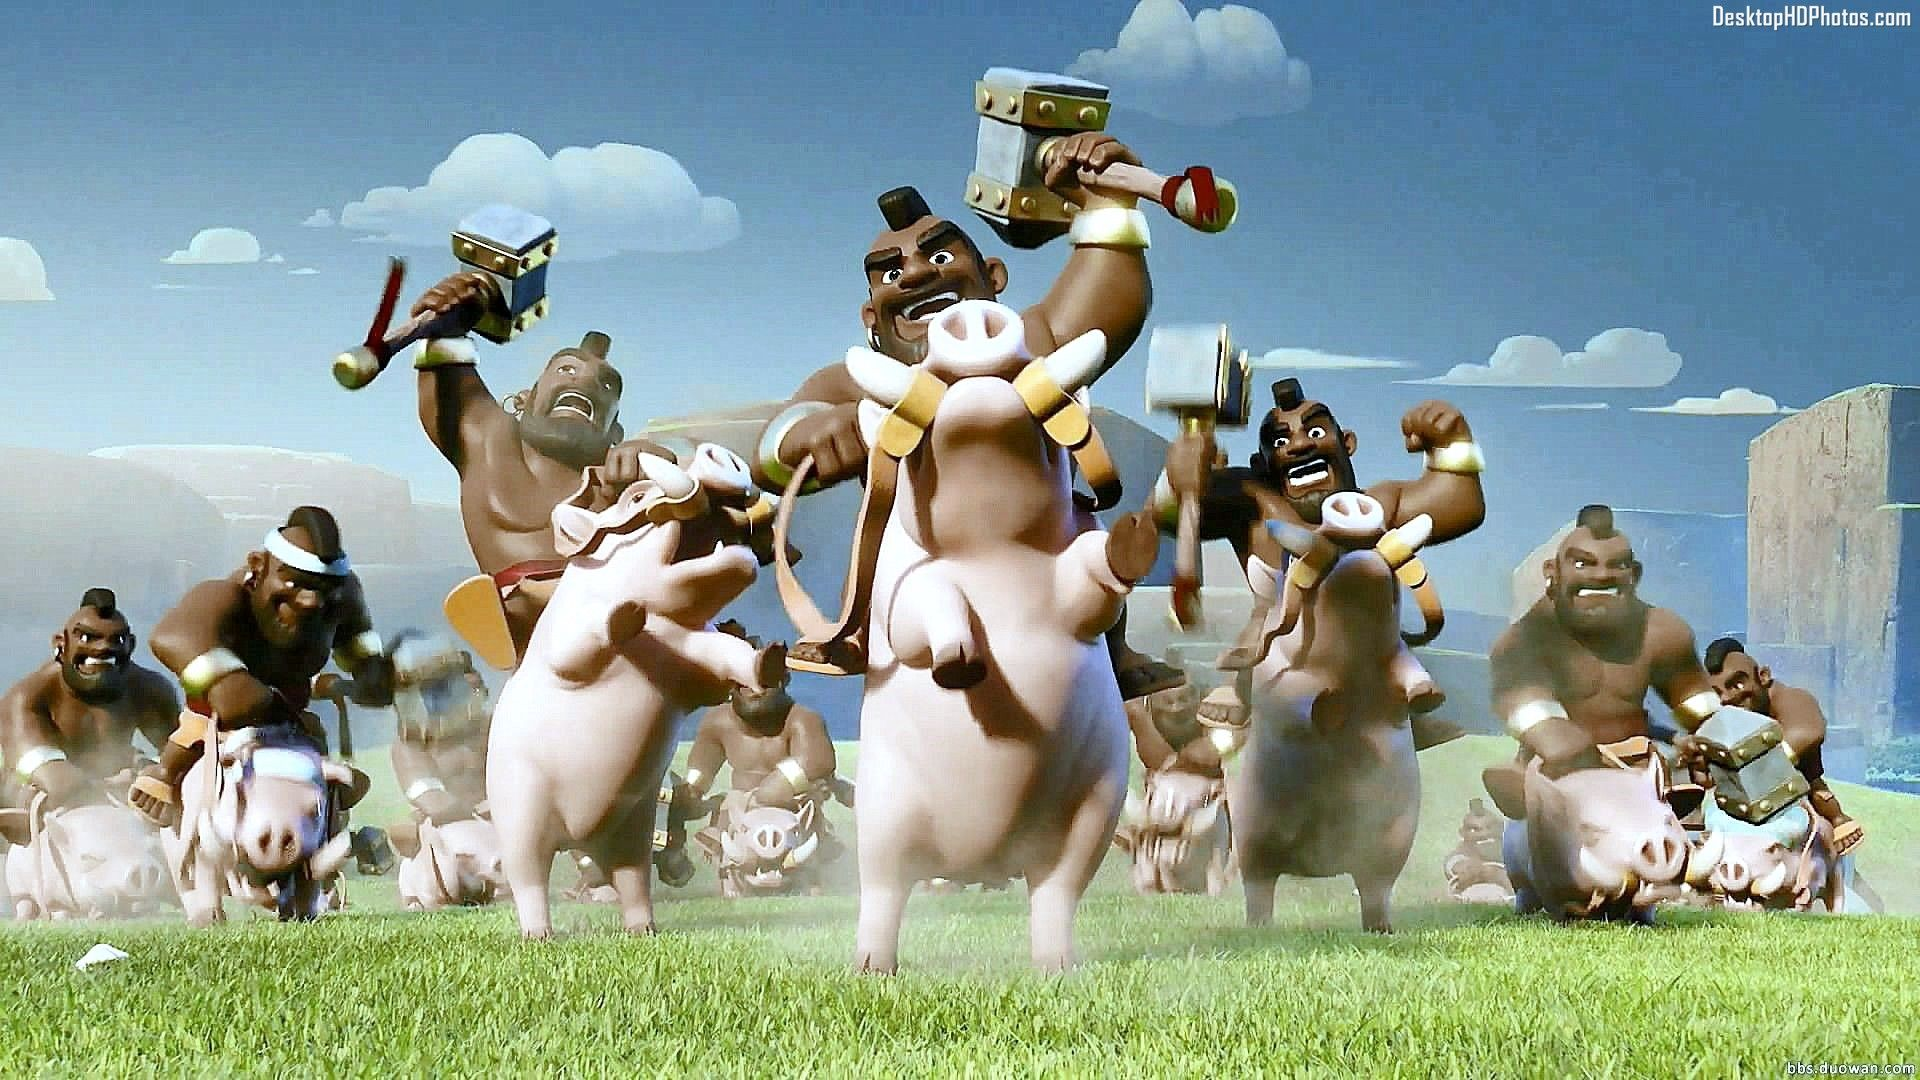 clash of clans wallpaper hd - Tag | Download HD Wallpaper - Page ...